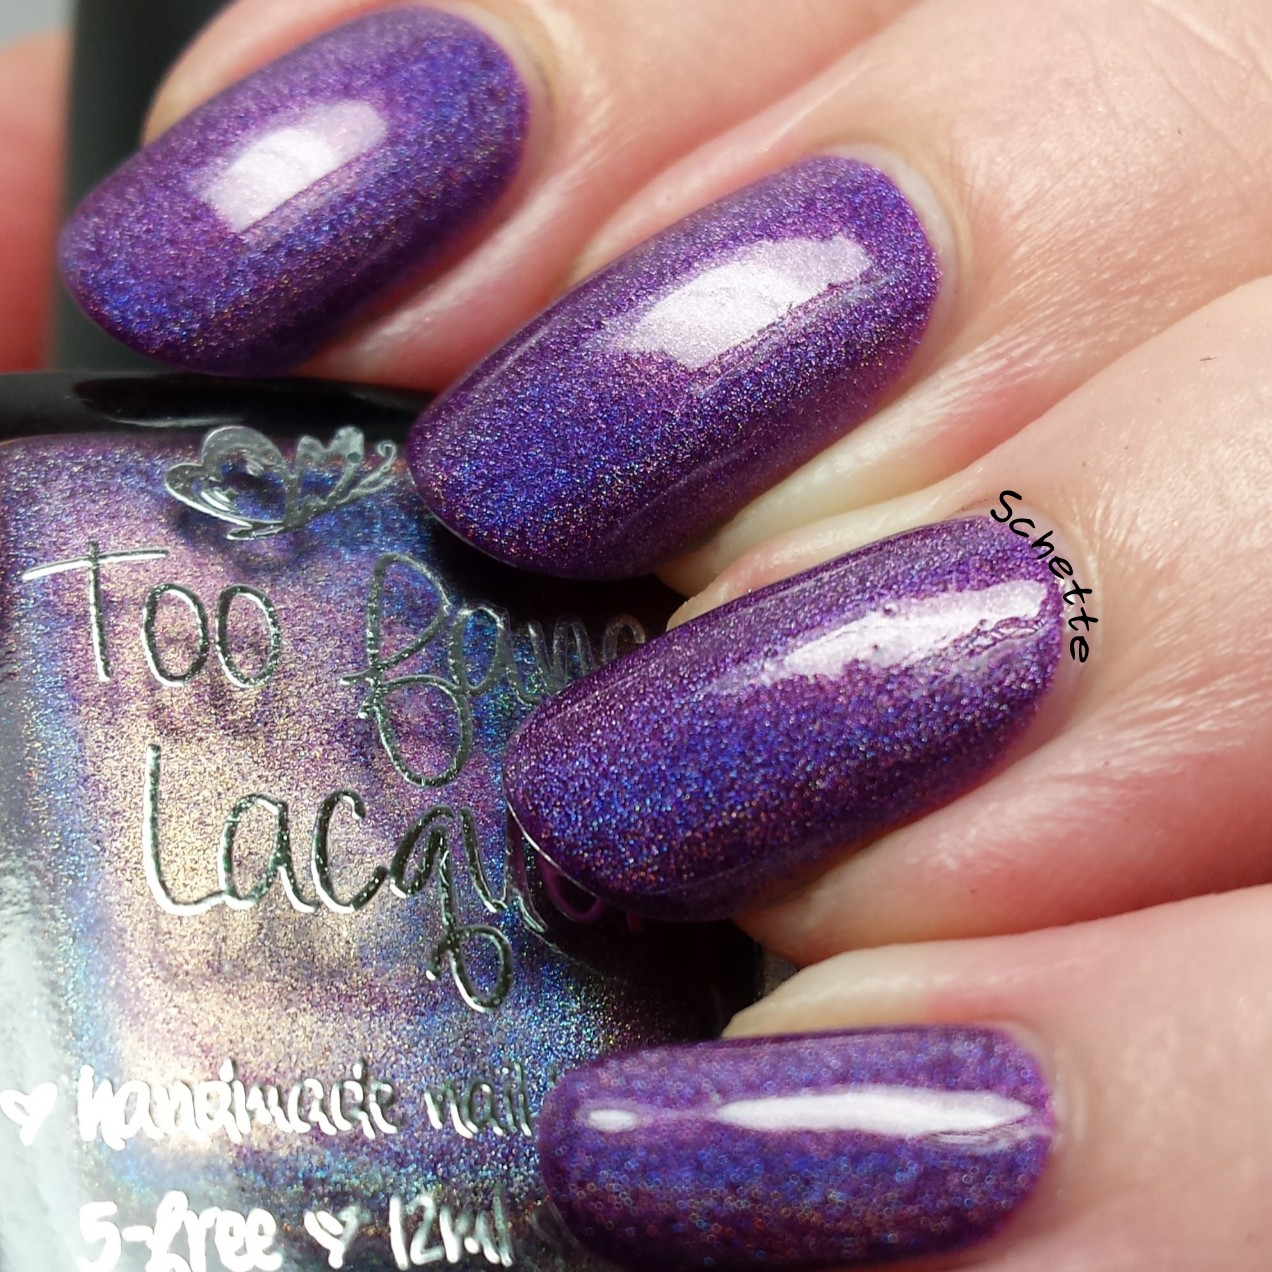 Too Fancy Lacquer - Here Here, w're 2 !